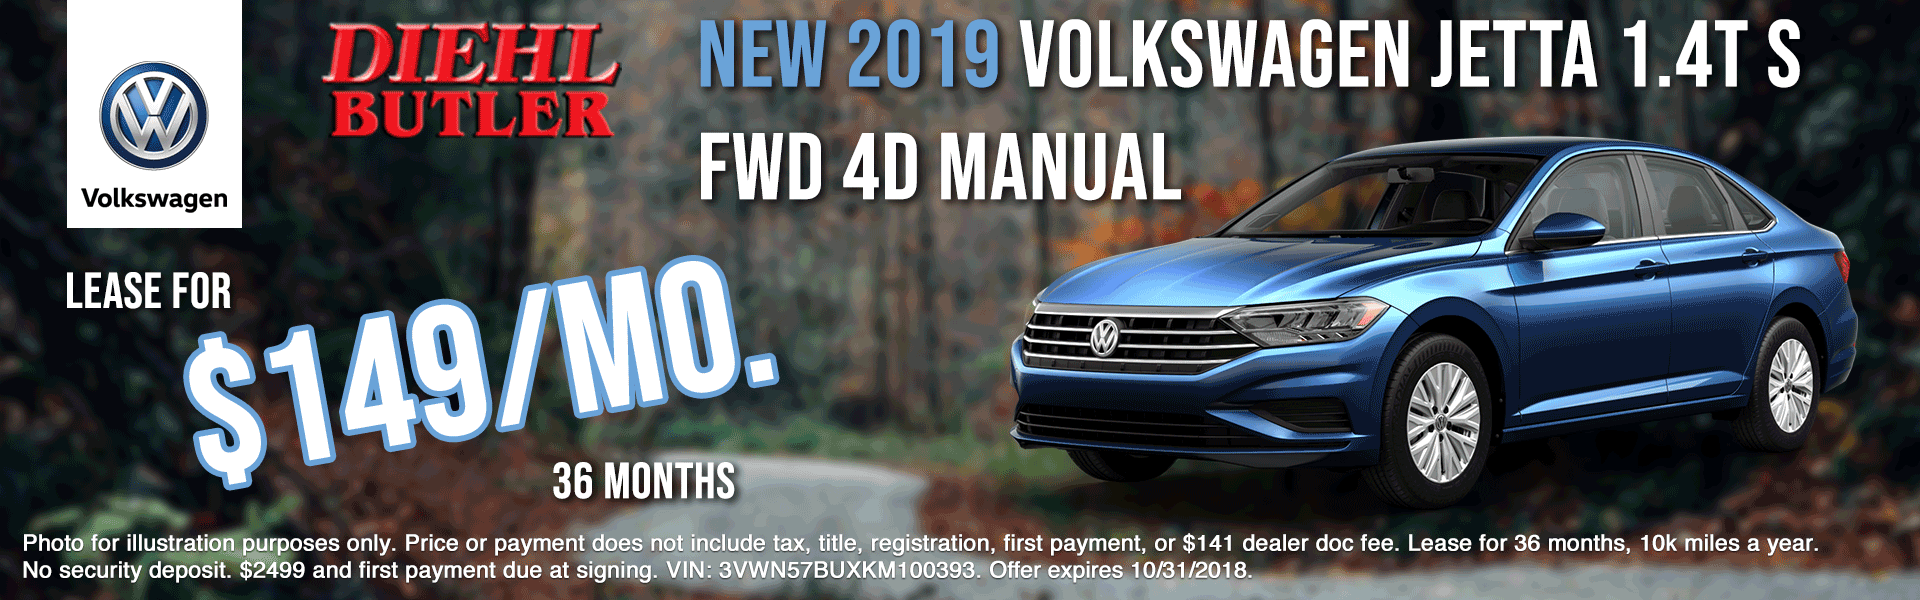 2019-VW-JETTA-S-MANUAL-V191001-OCT-BIG diehl vw diehl volkswagen vw specials volkswagen specials jetta specials lease specials